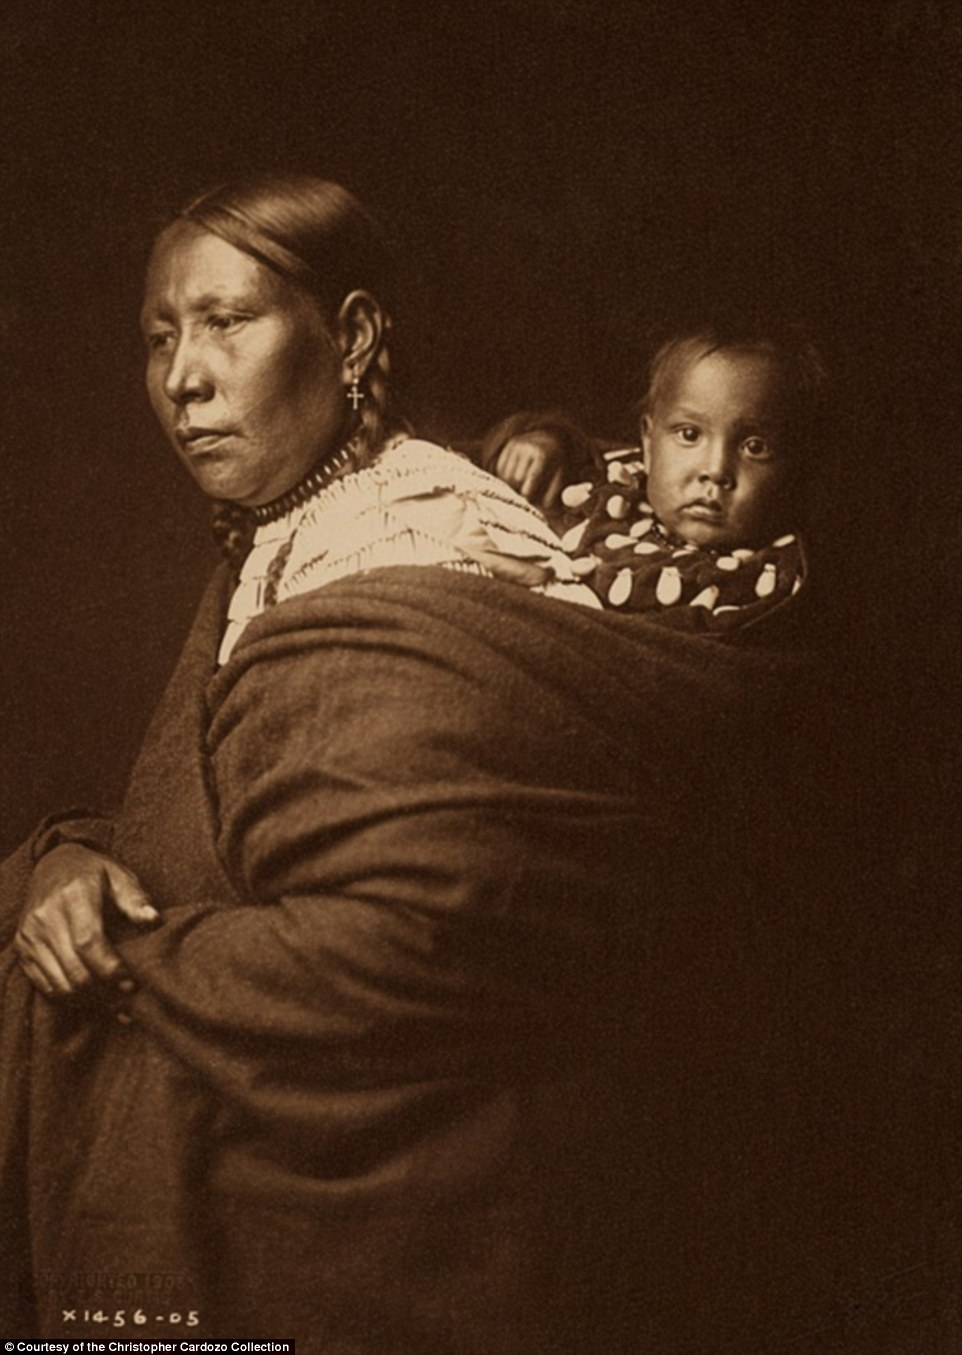 This 1905 photo, 'Sioux Mother and Child', is accompanied by an essay that notes the references children being taken away to boarding schools run by the U.S. government